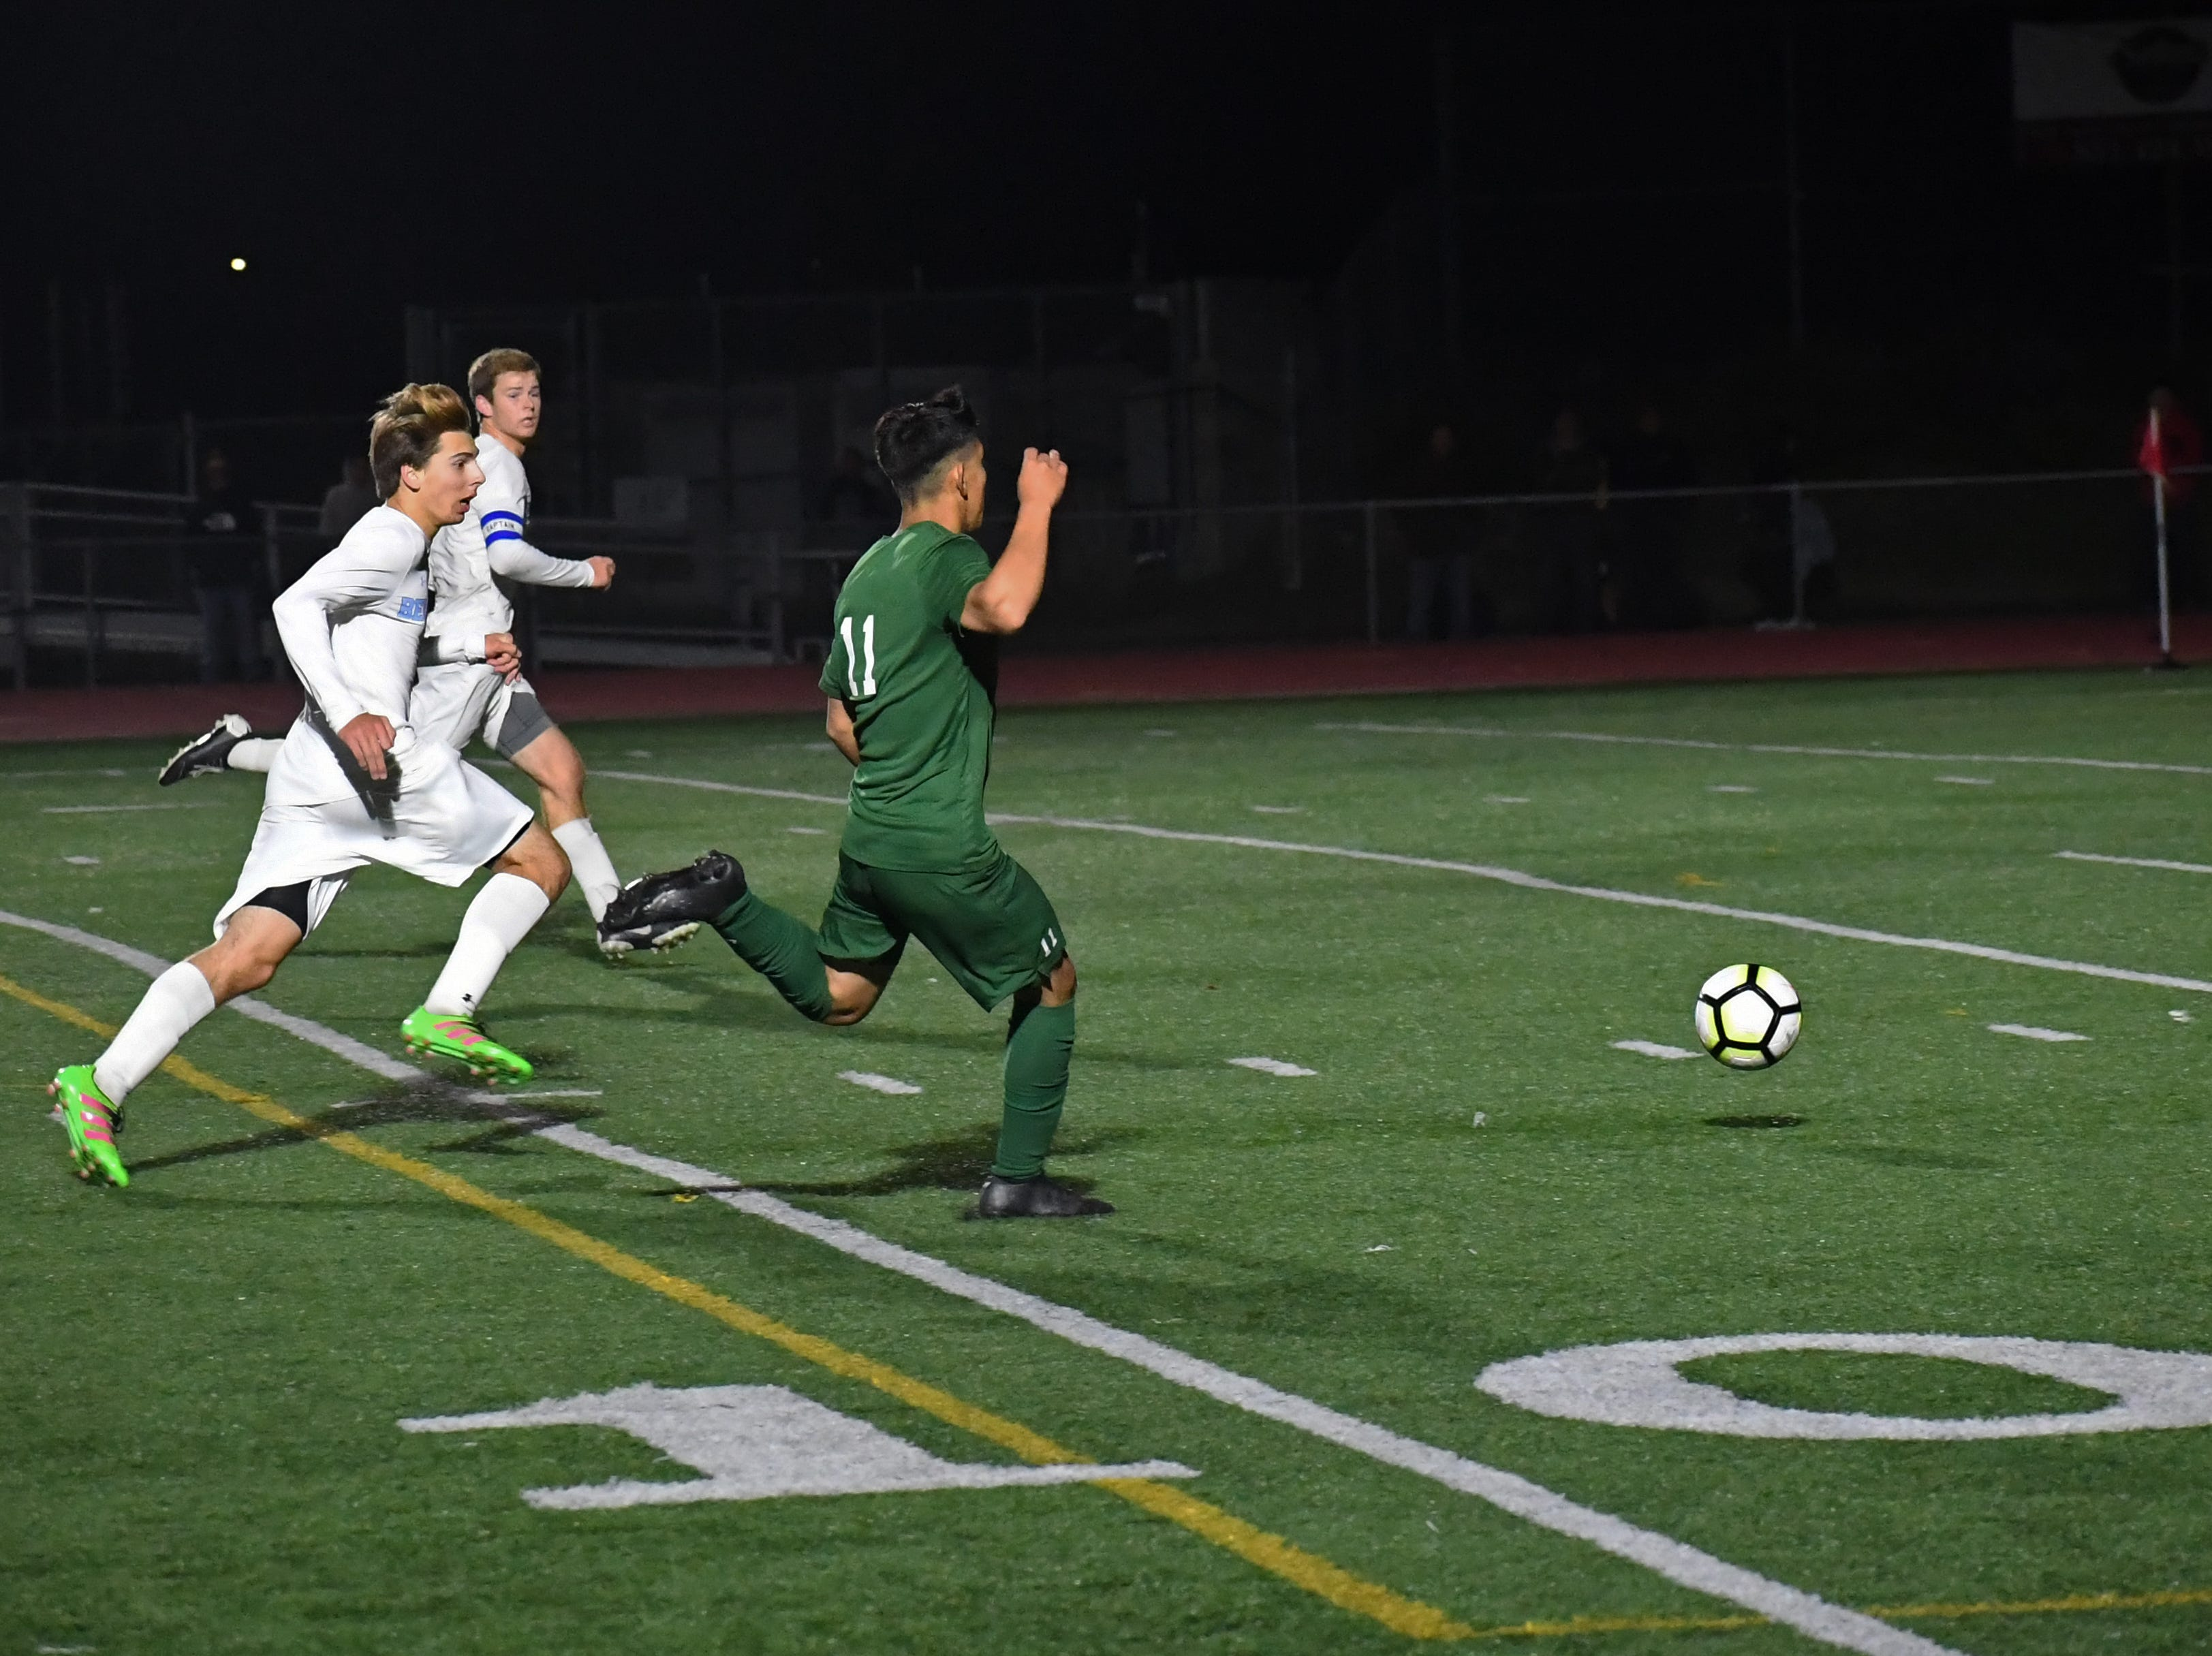 Midfielder Juan Garcia-Duran (11) fires a shot from just outside the box in the second half.